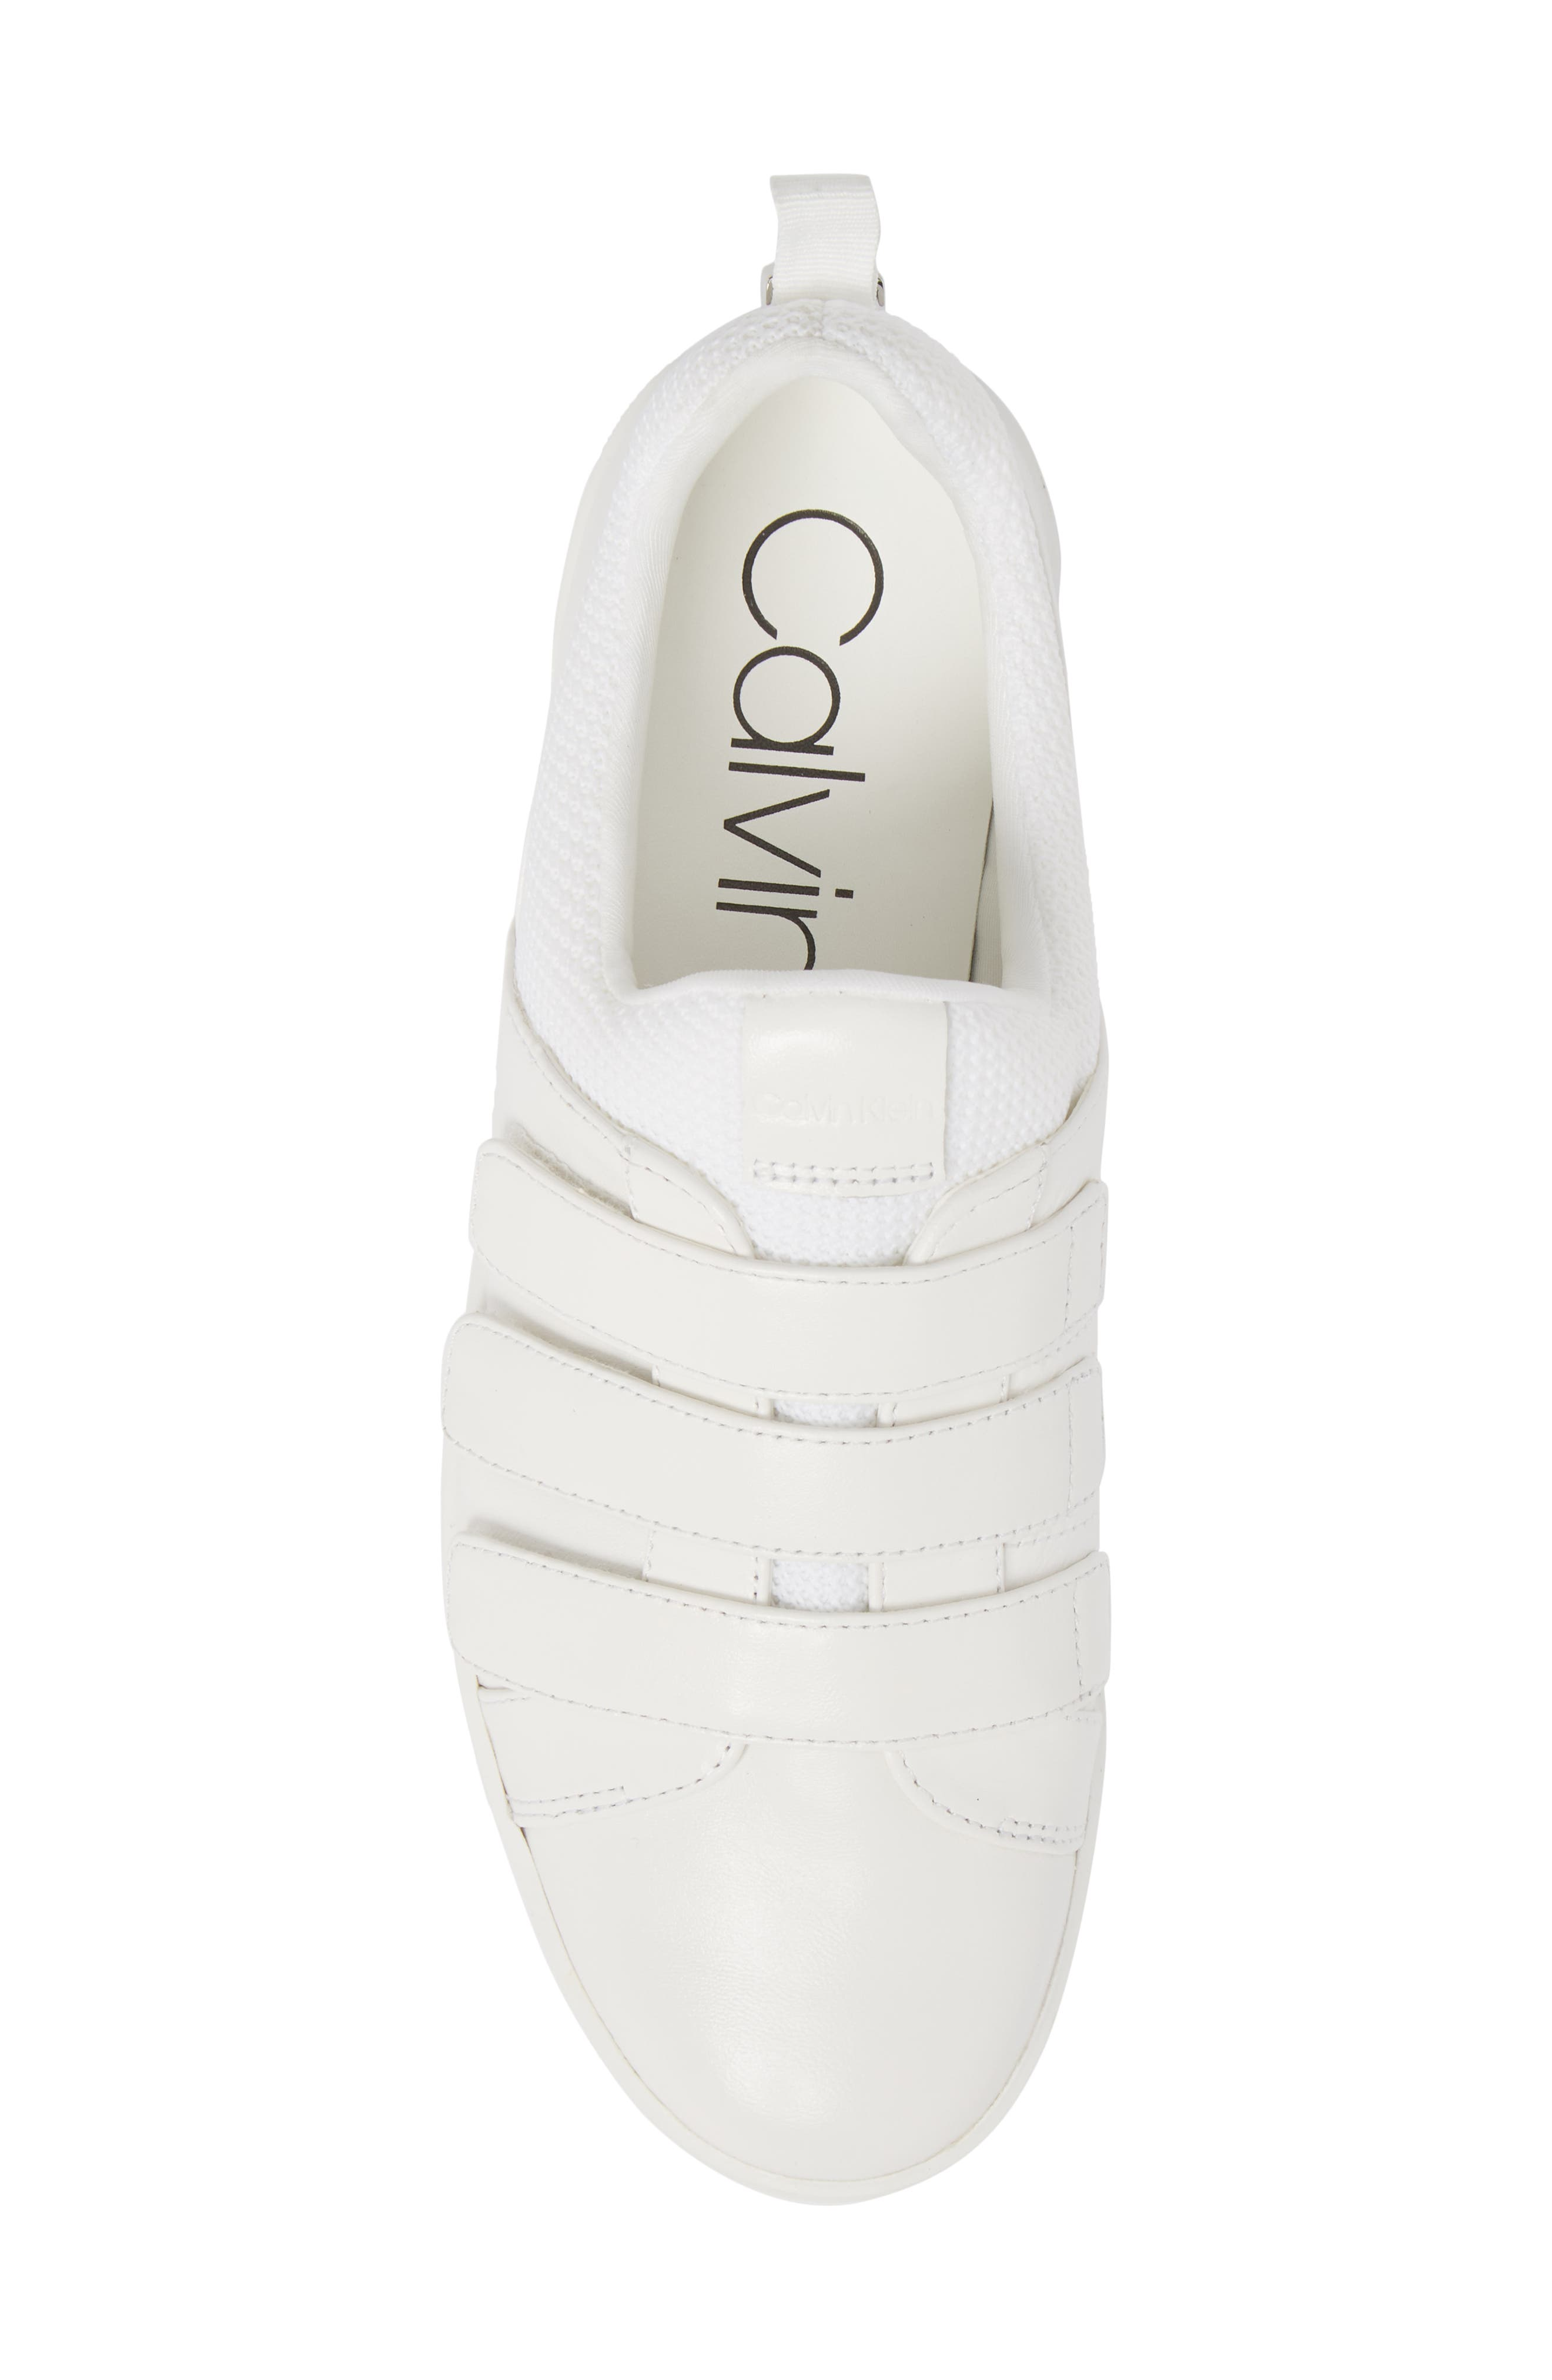 Irah Sneaker,                             Alternate thumbnail 5, color,                             WHITE LEATHER